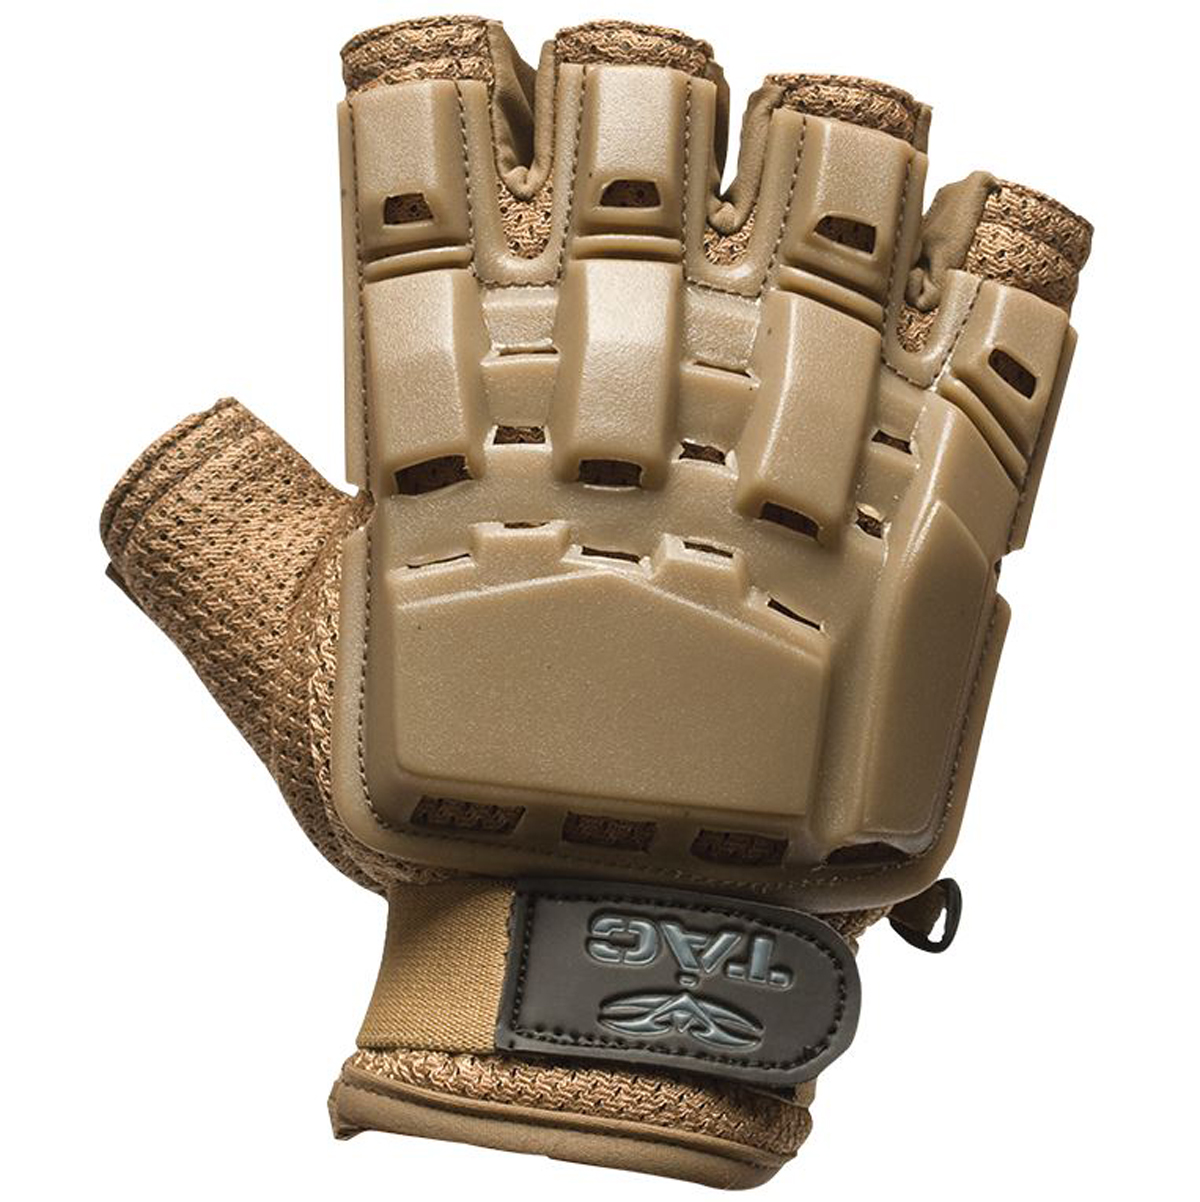 Valken Paintball V-Tac Half Finger Plastic Backed Gloves - Tan